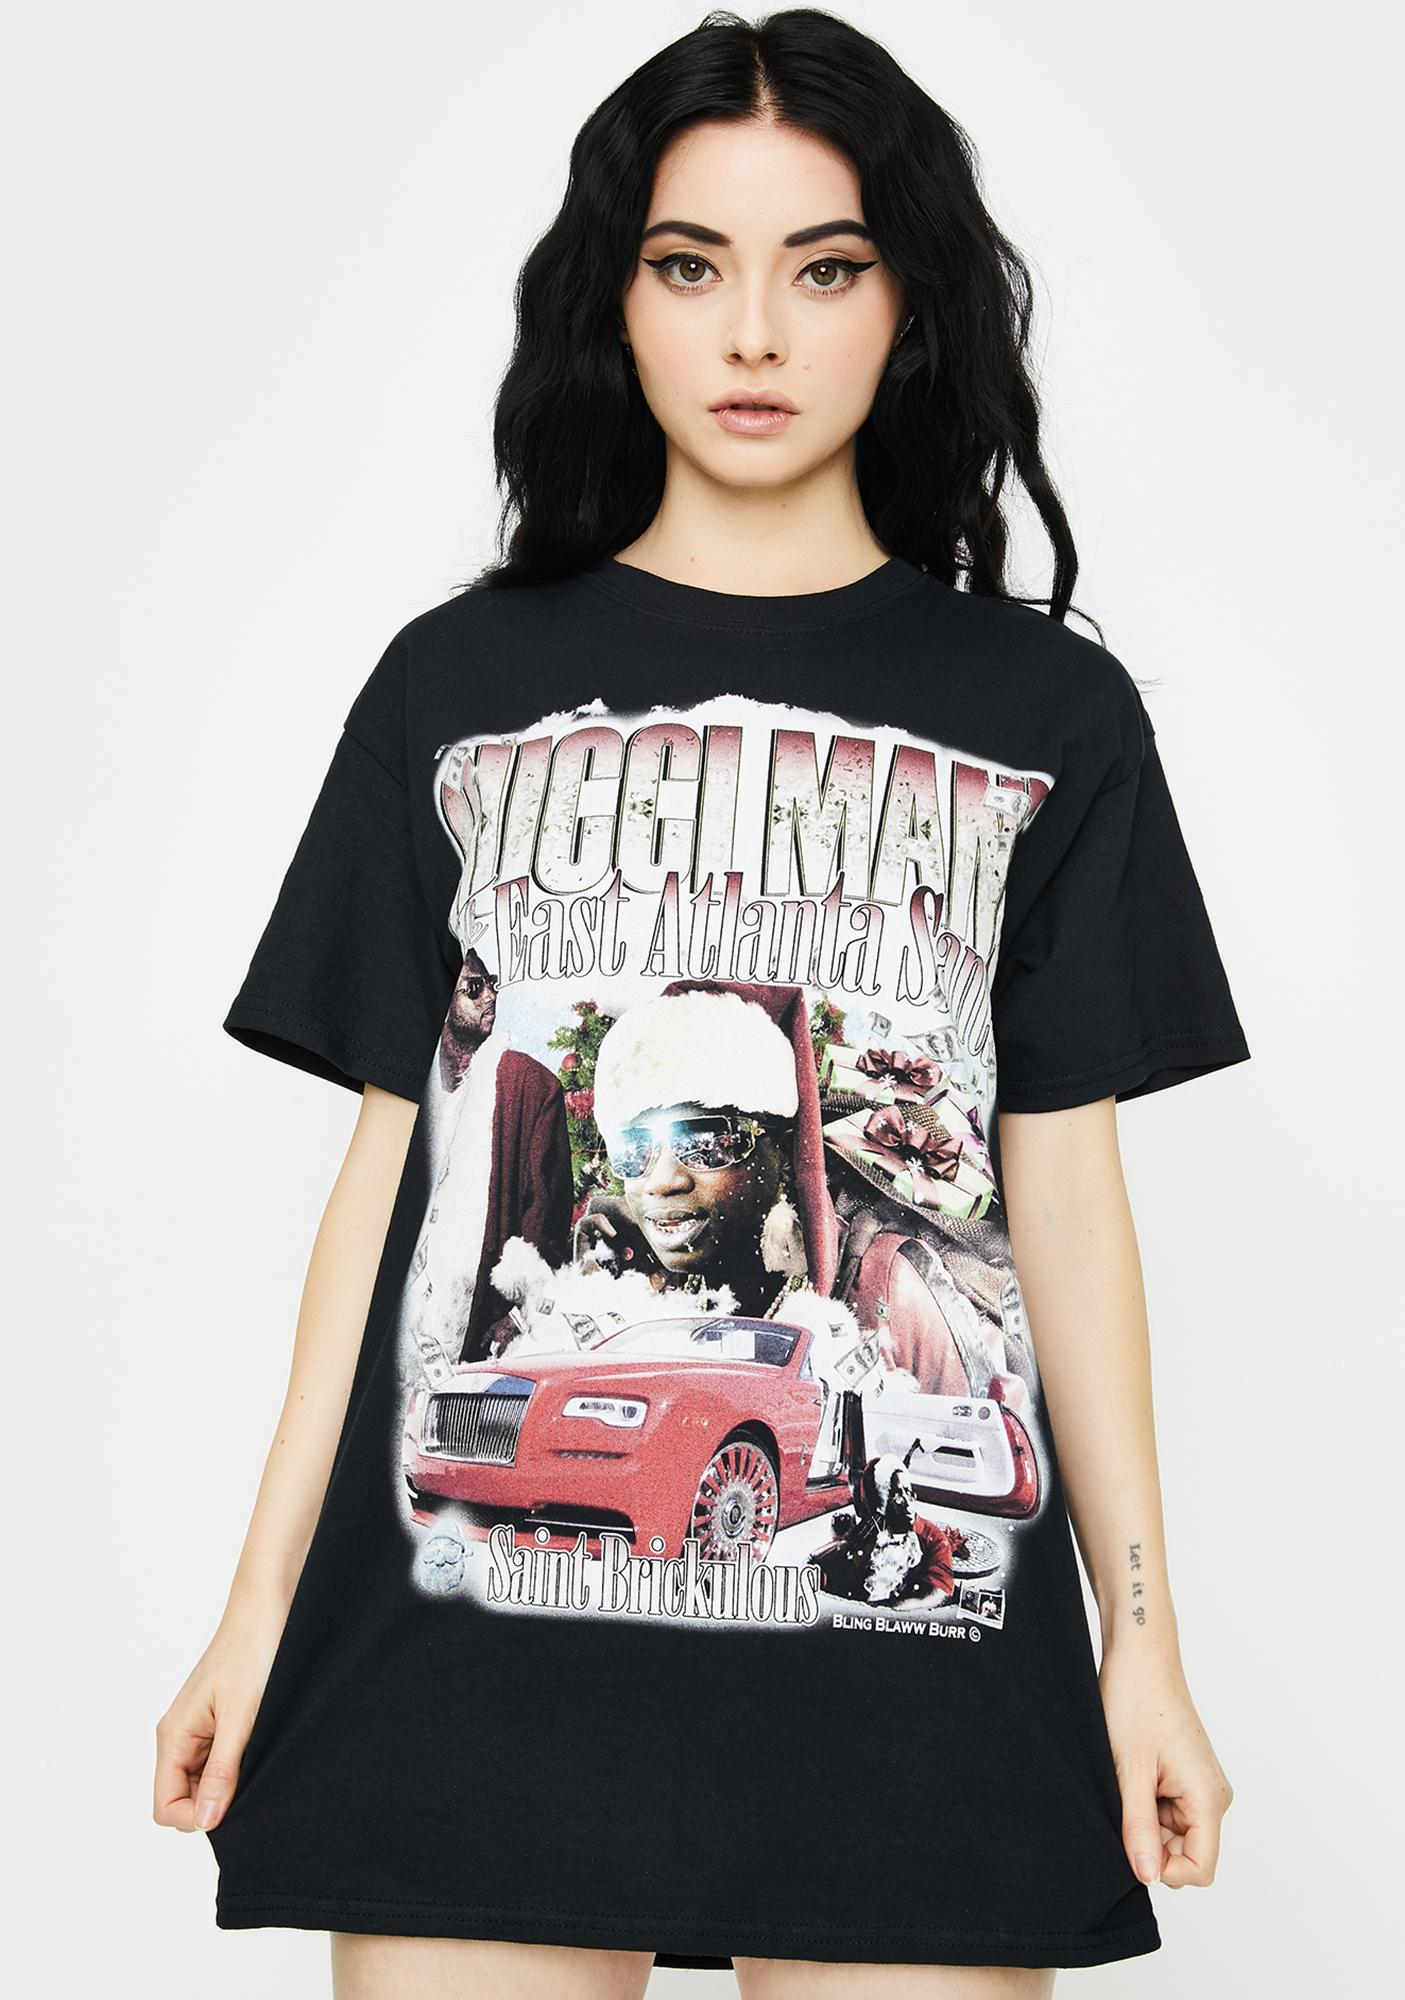 Hood Santa Graphic Tee by Homage